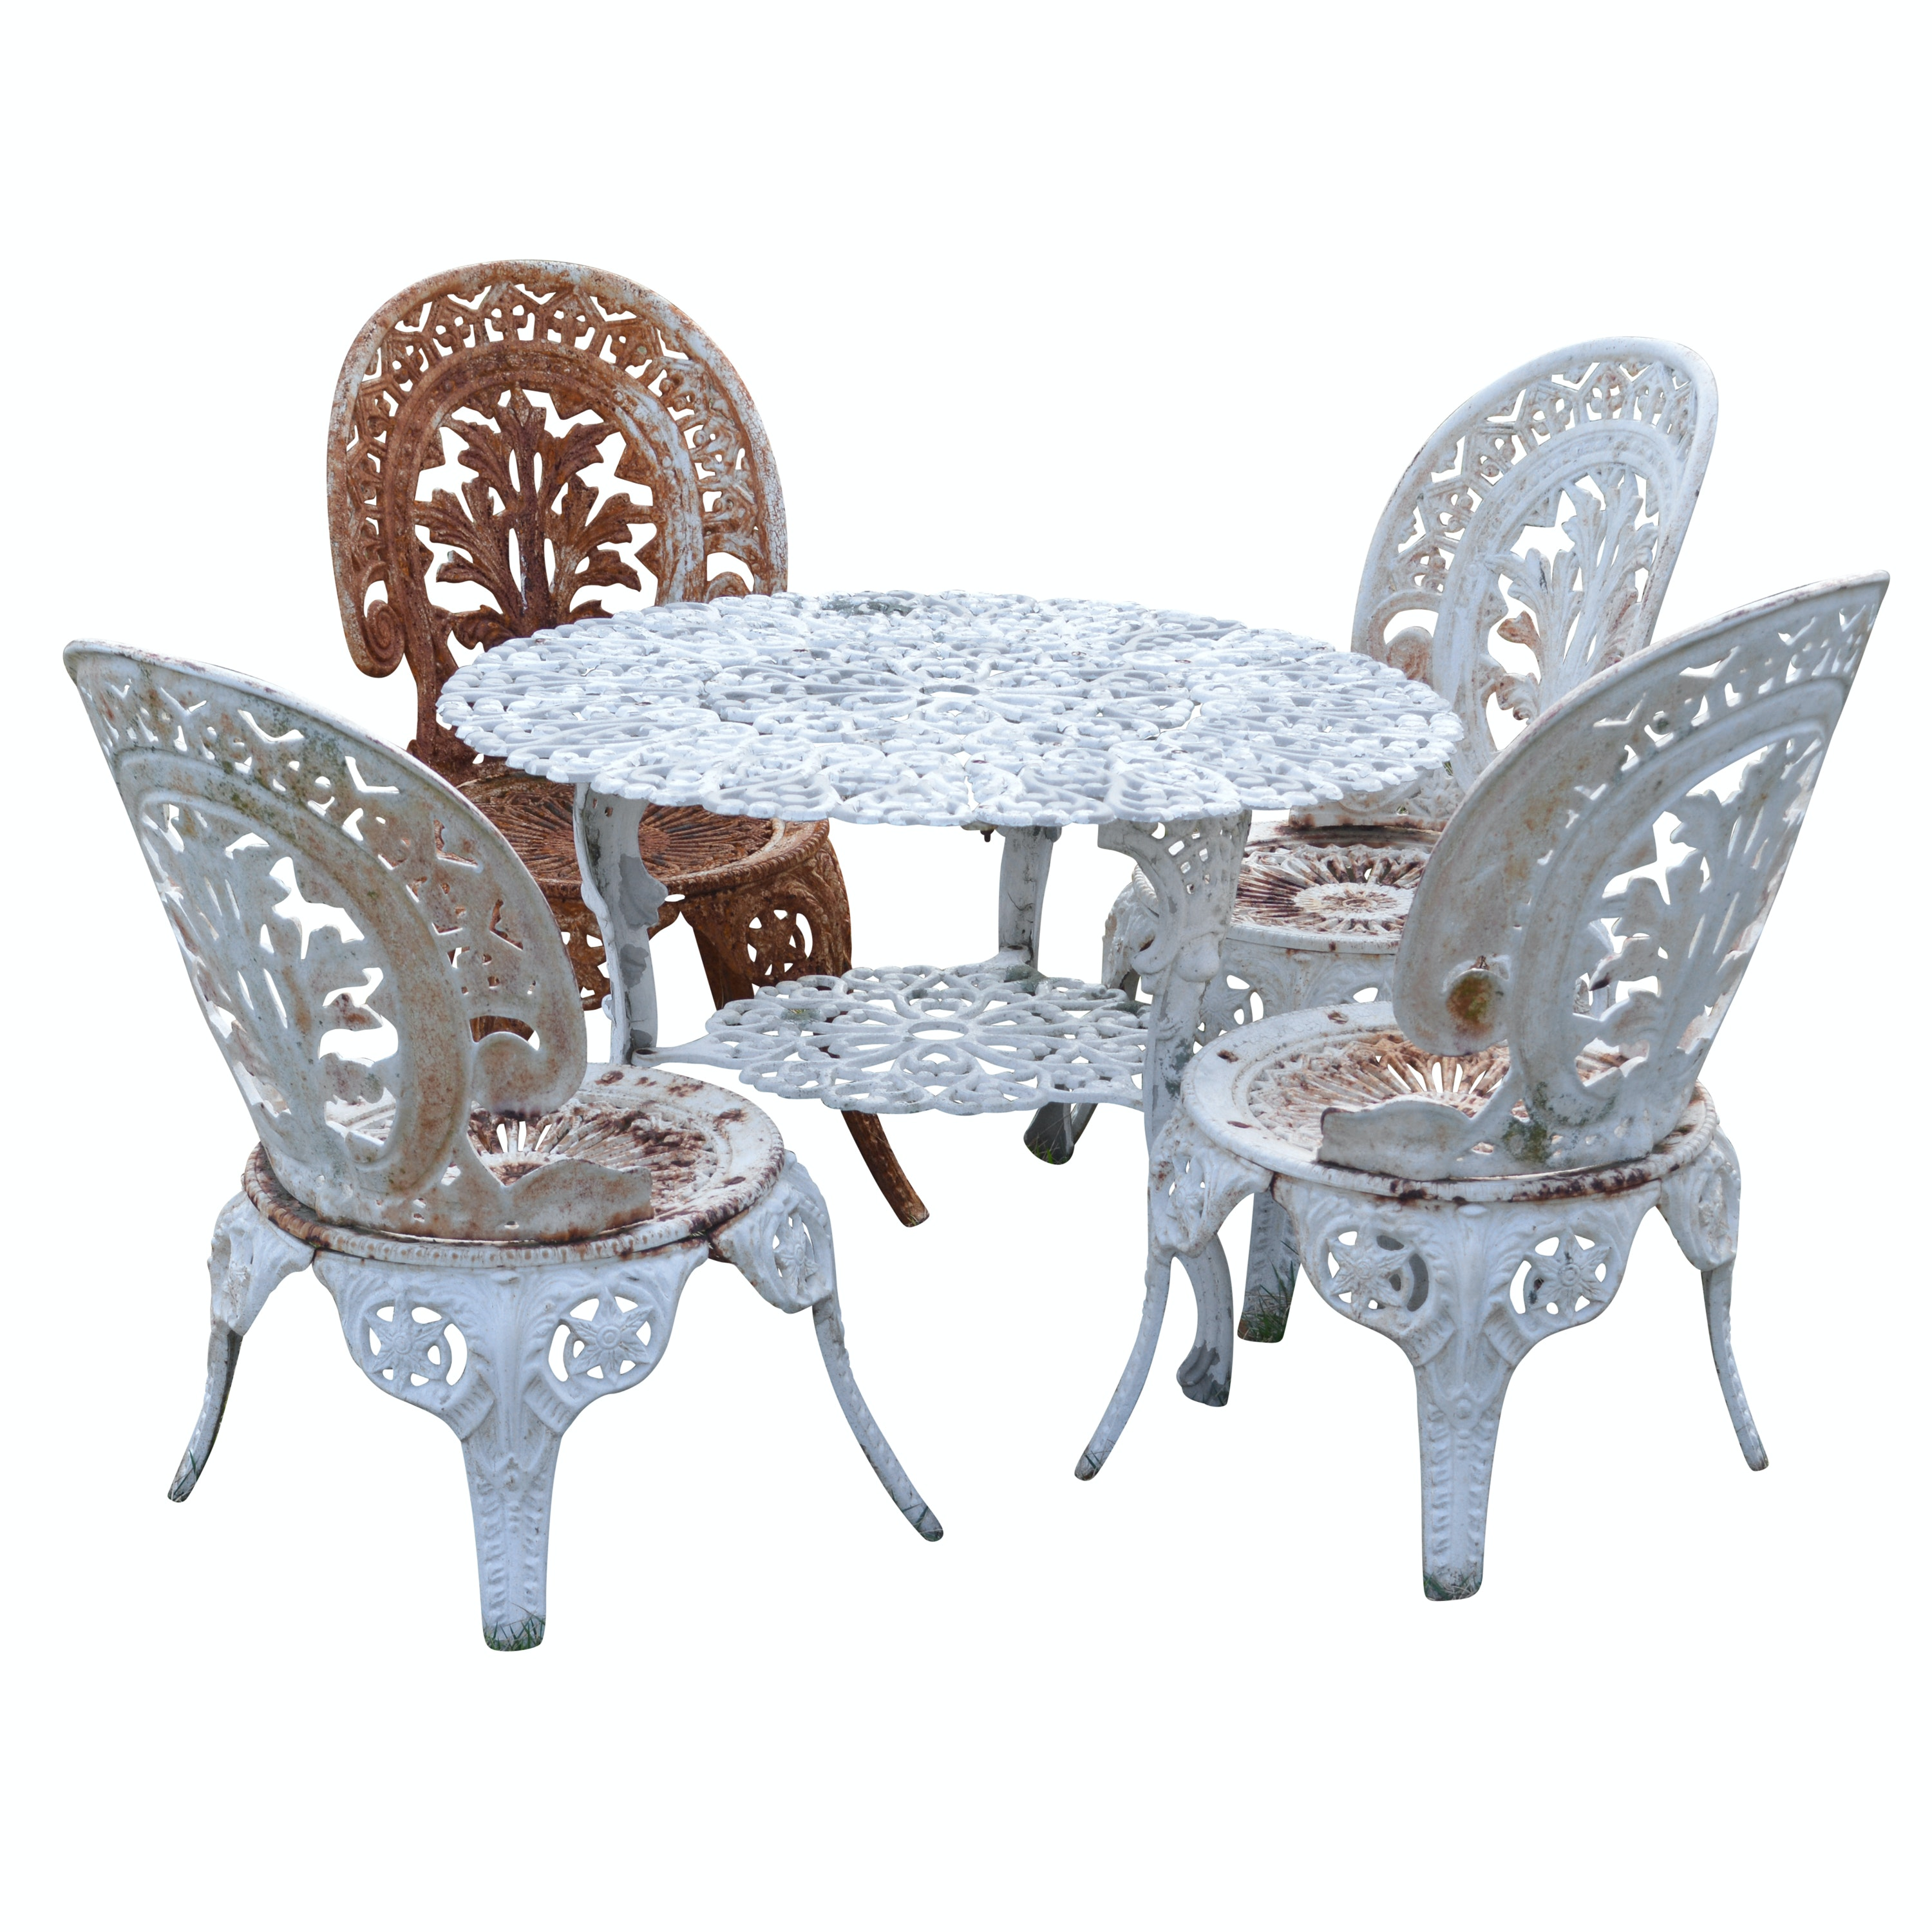 Child's Size Metal Table and Four Chairs in the Victorian Style